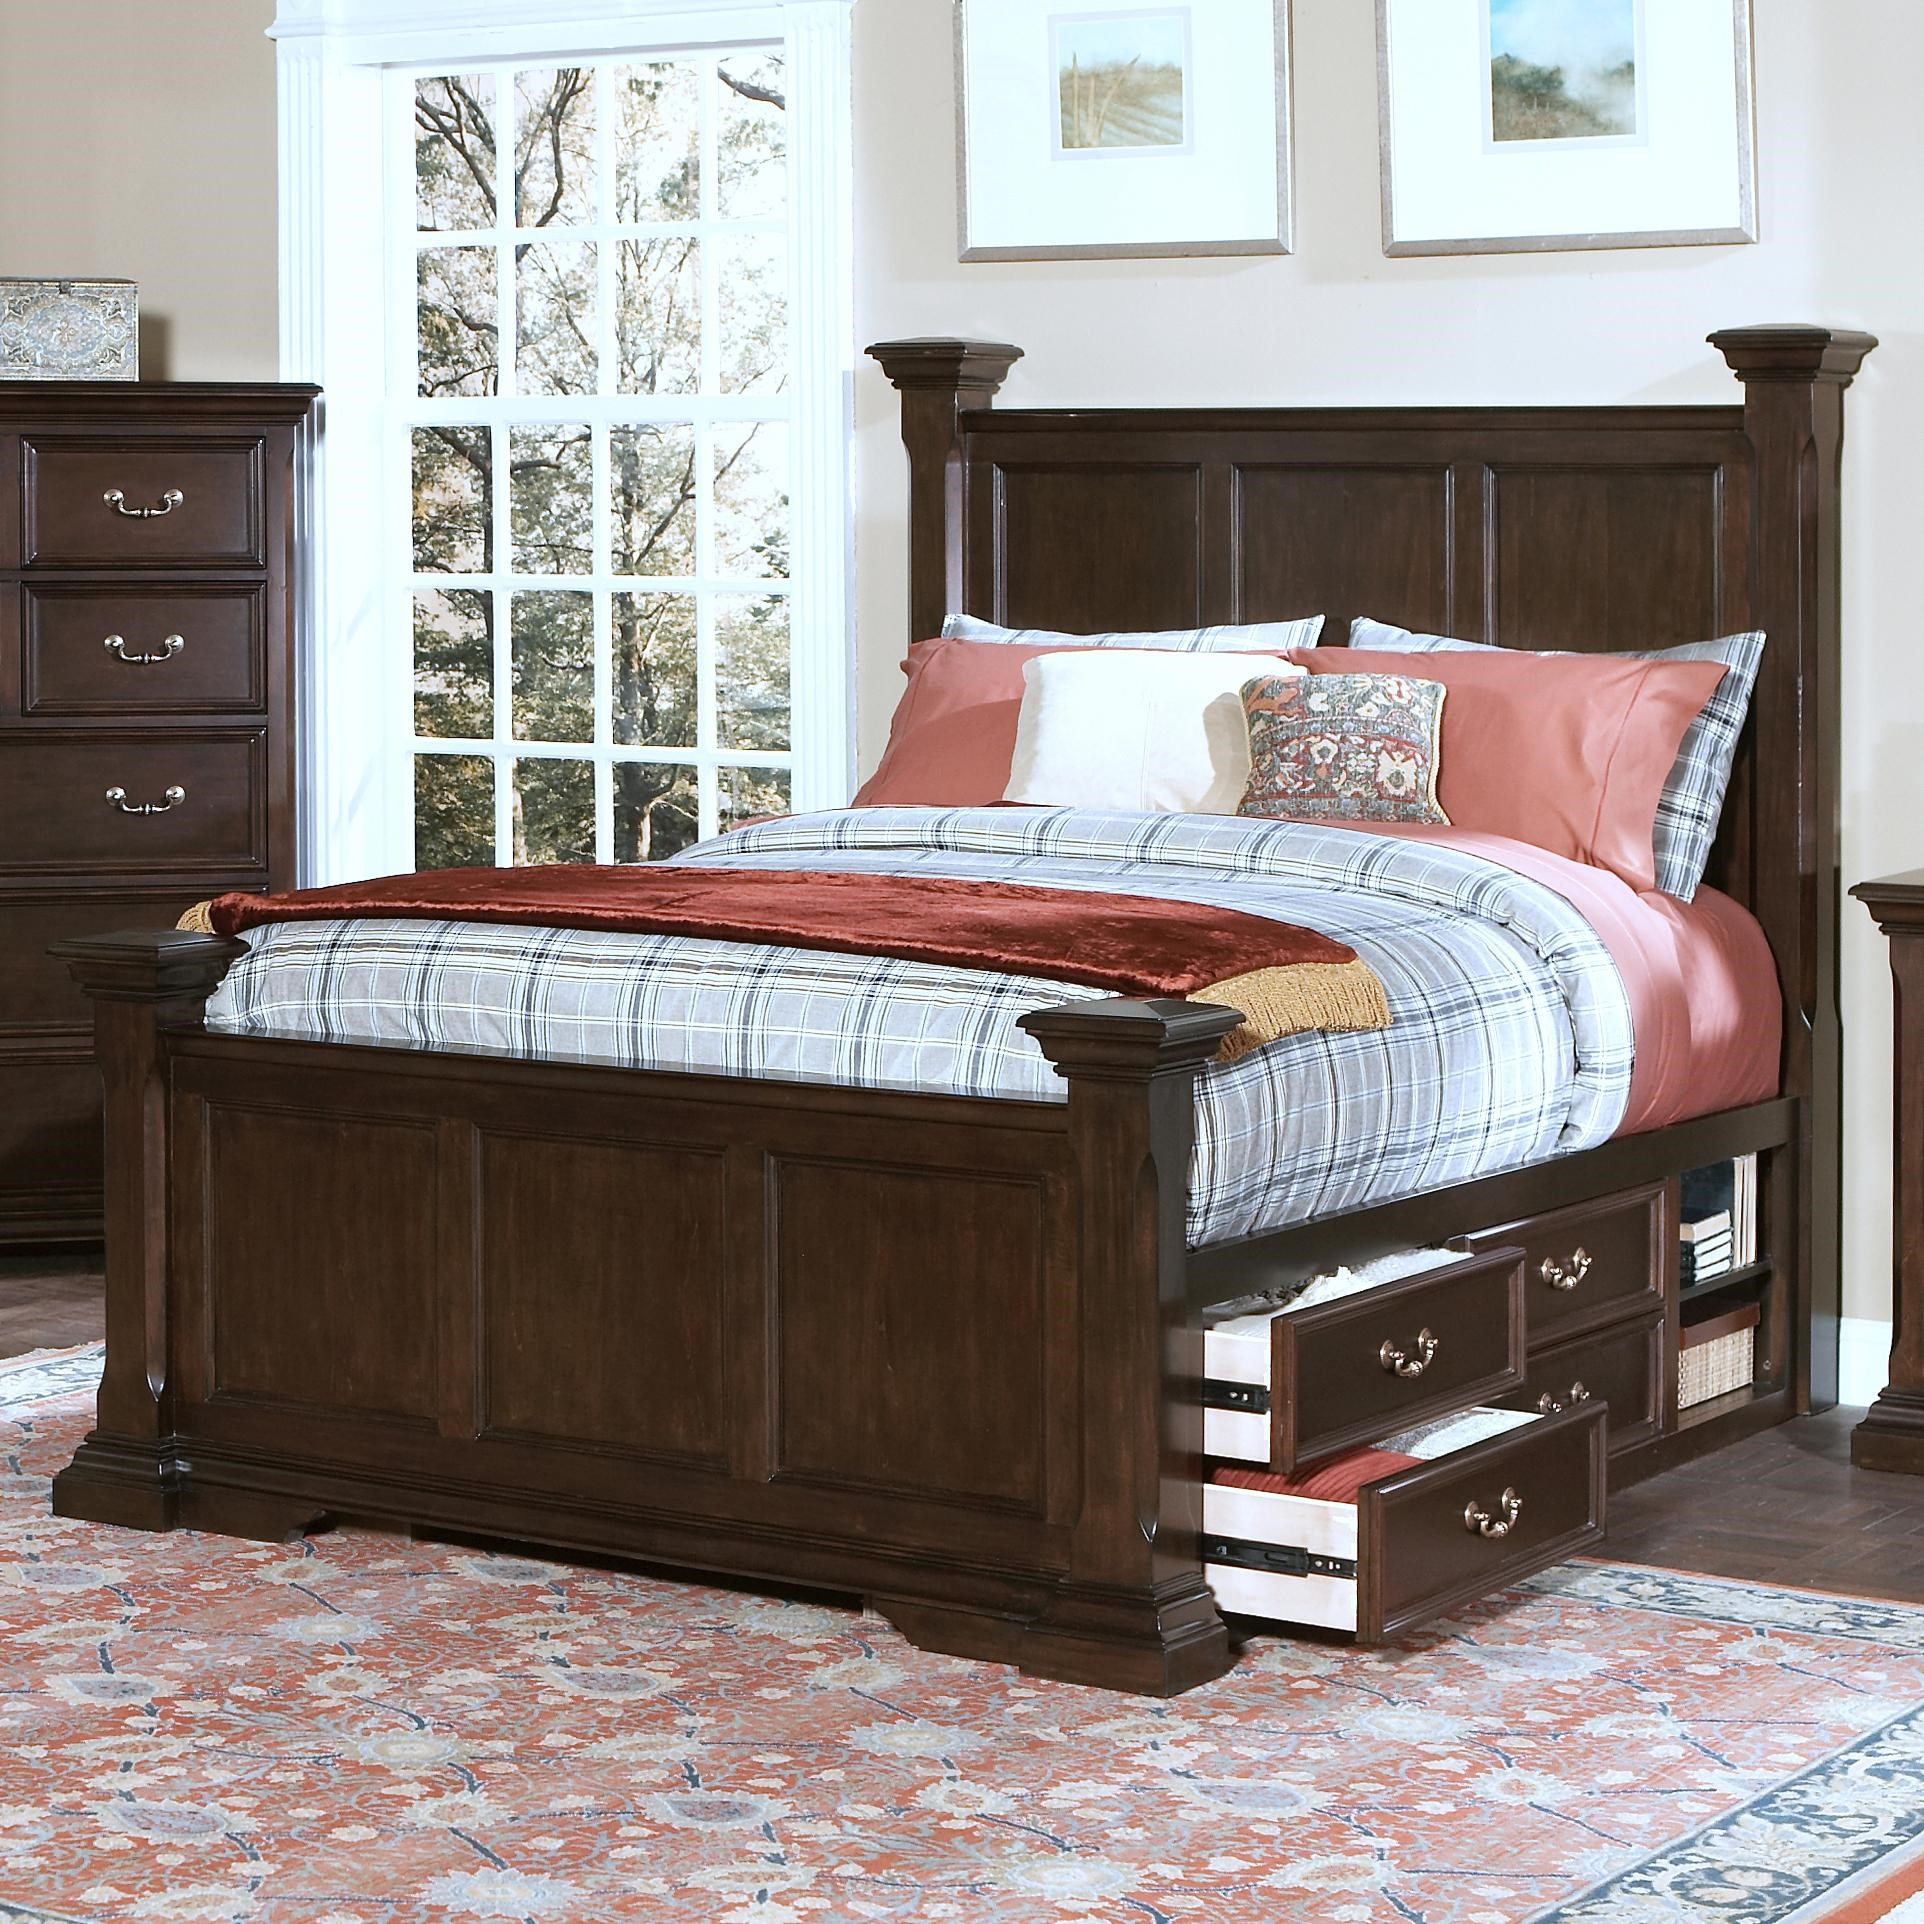 Good New Classic Timber City California King Captainu0027s Bed With Underbed Storage  And Decorative Posts